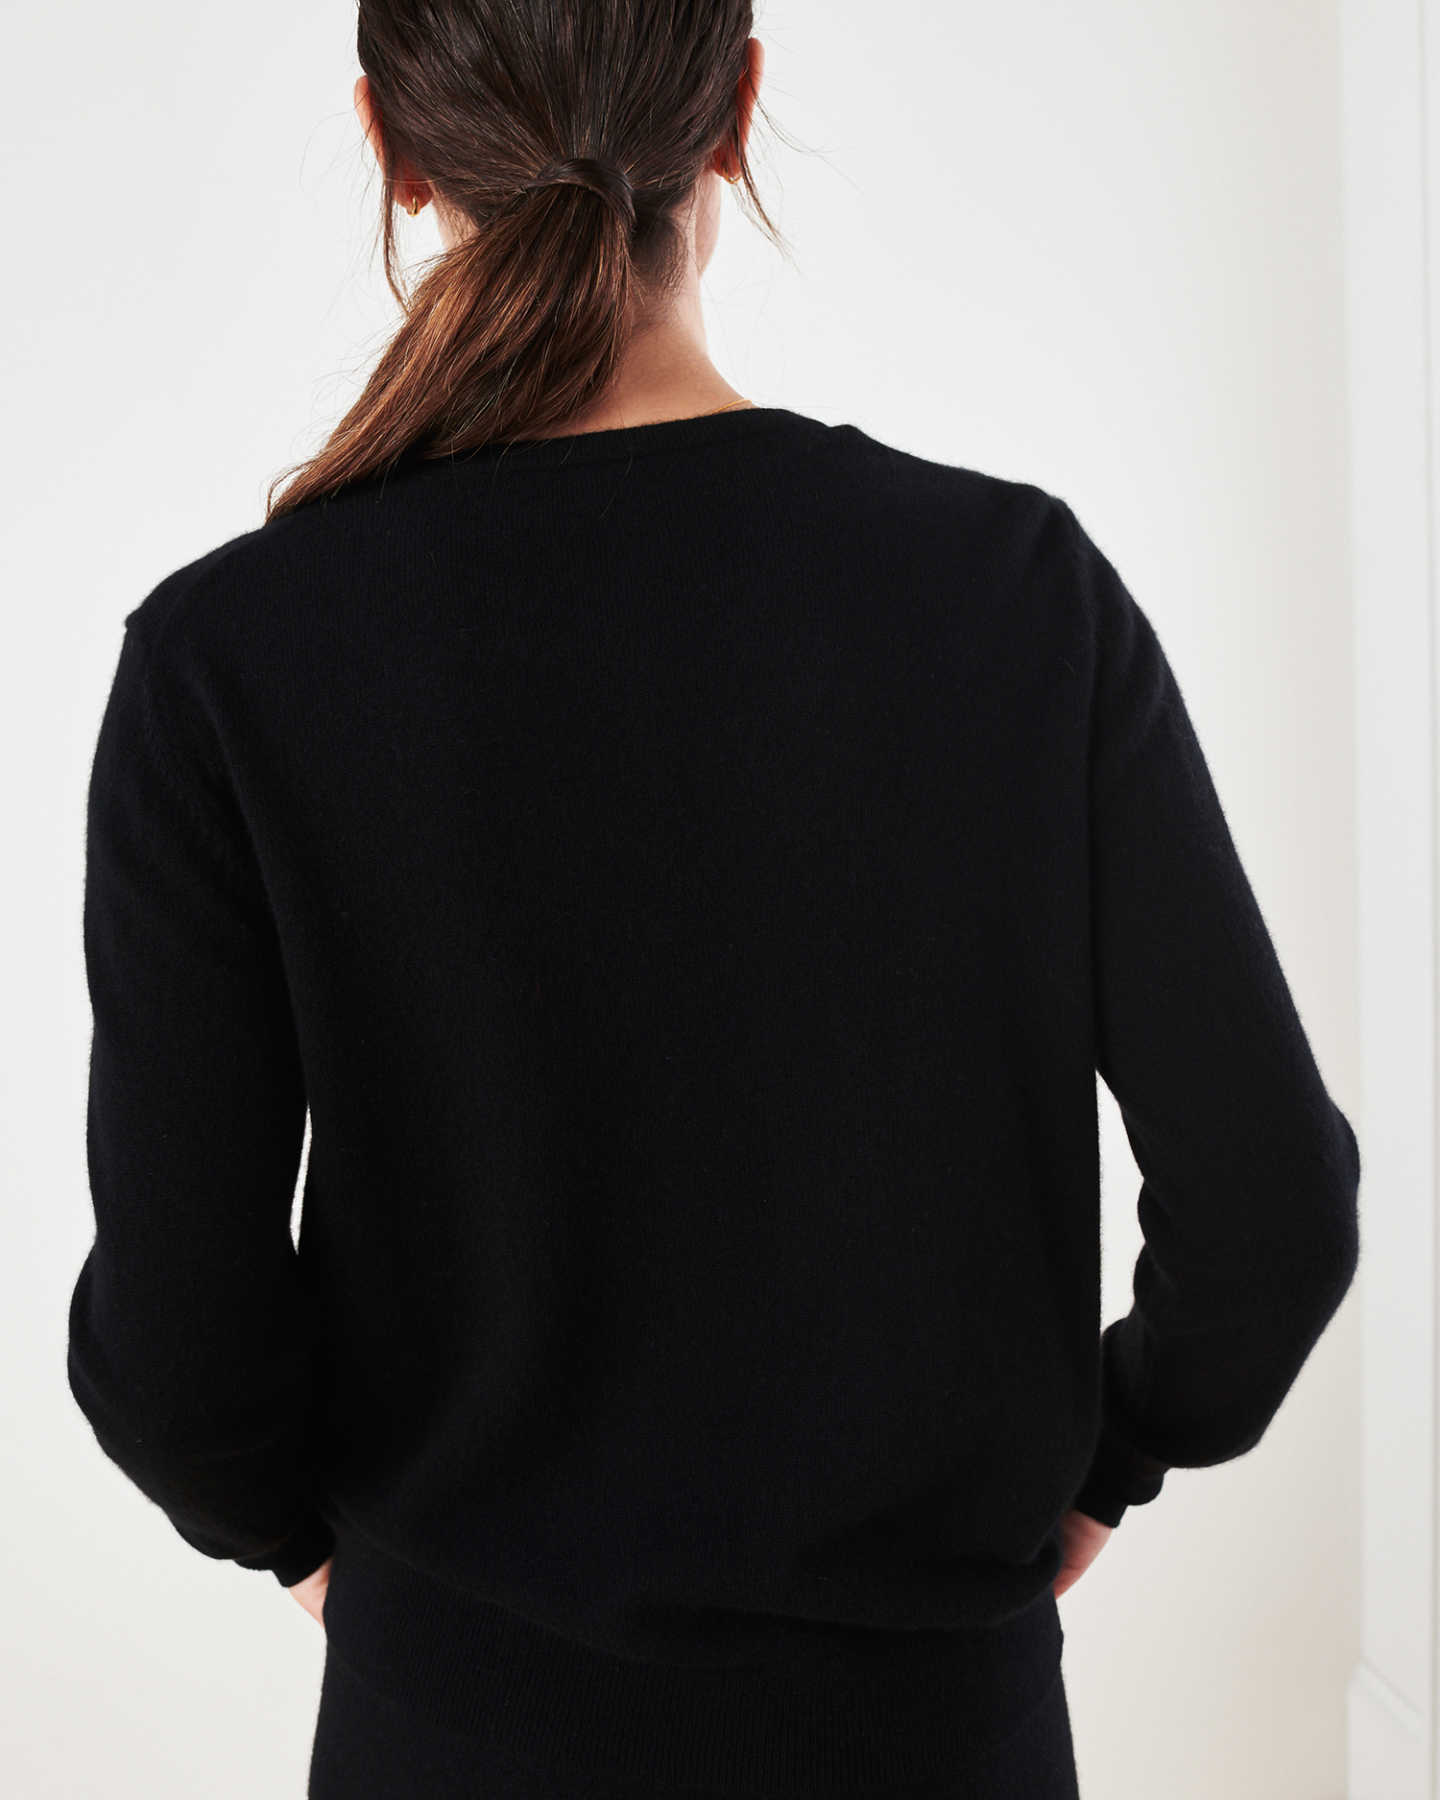 Woman wearing black cashmere cardigan sweater and black cashmere sweatpants back